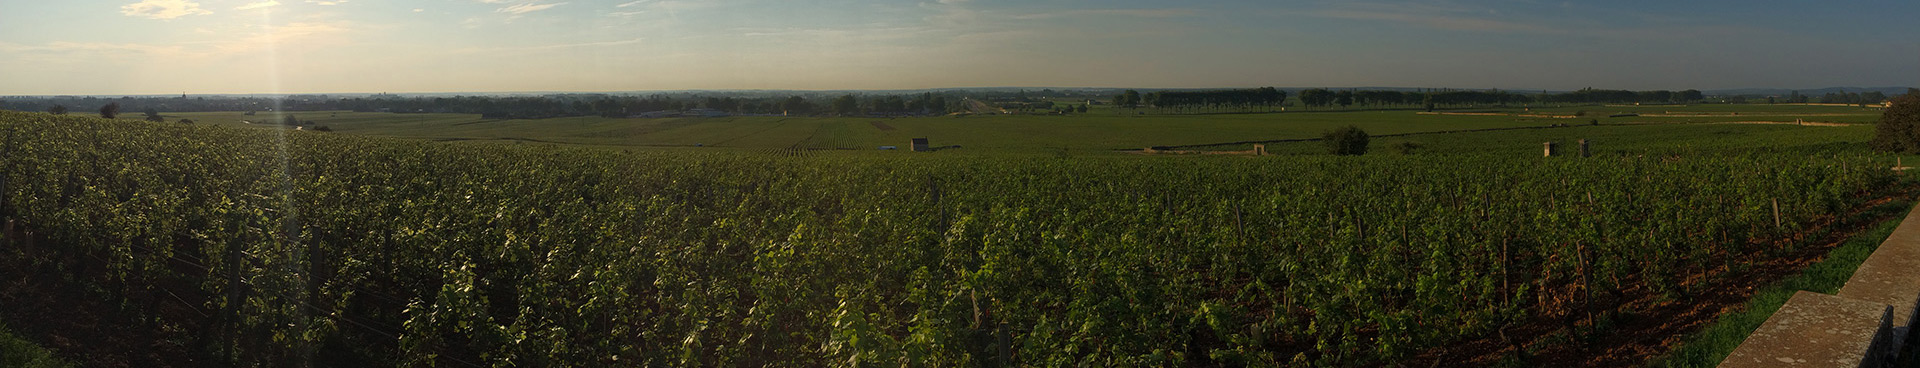 Panoramic image of a vineyard in Burgundy in the sun